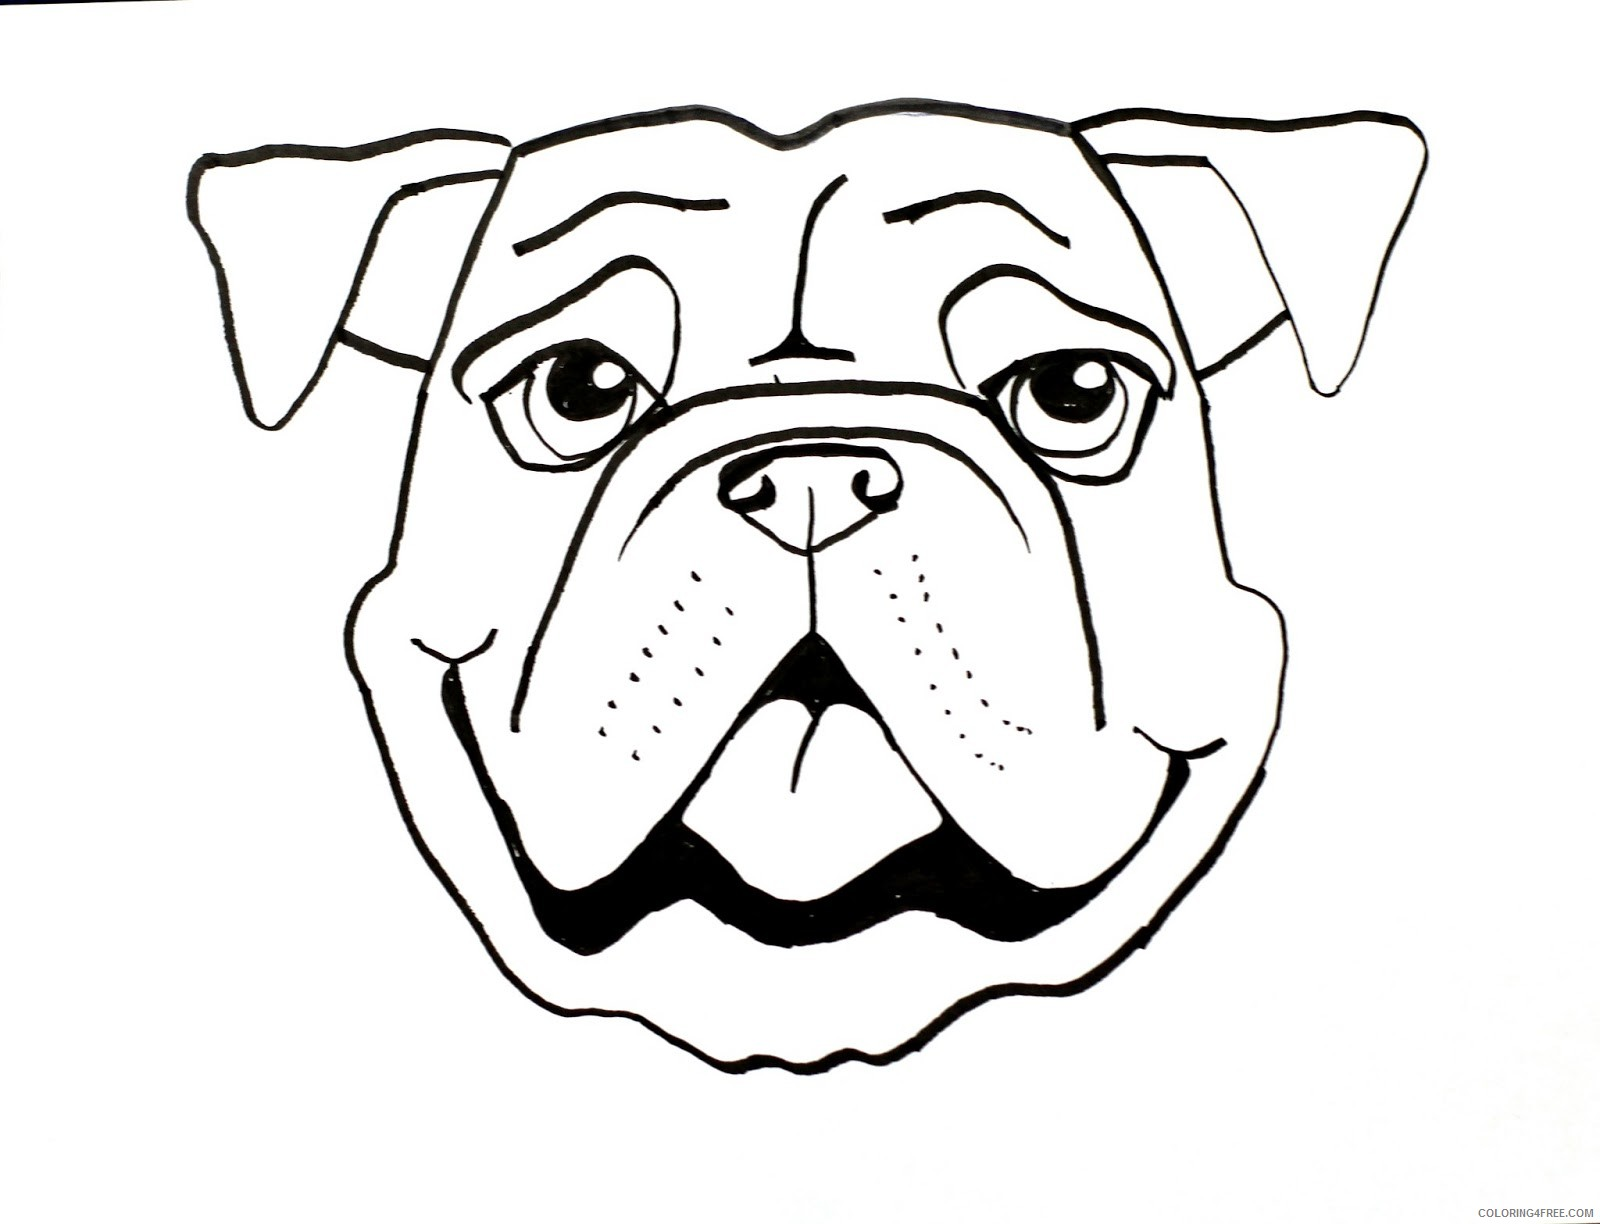 Bulldog Coloring Pages smart class bull dog draw Printable Coloring4free